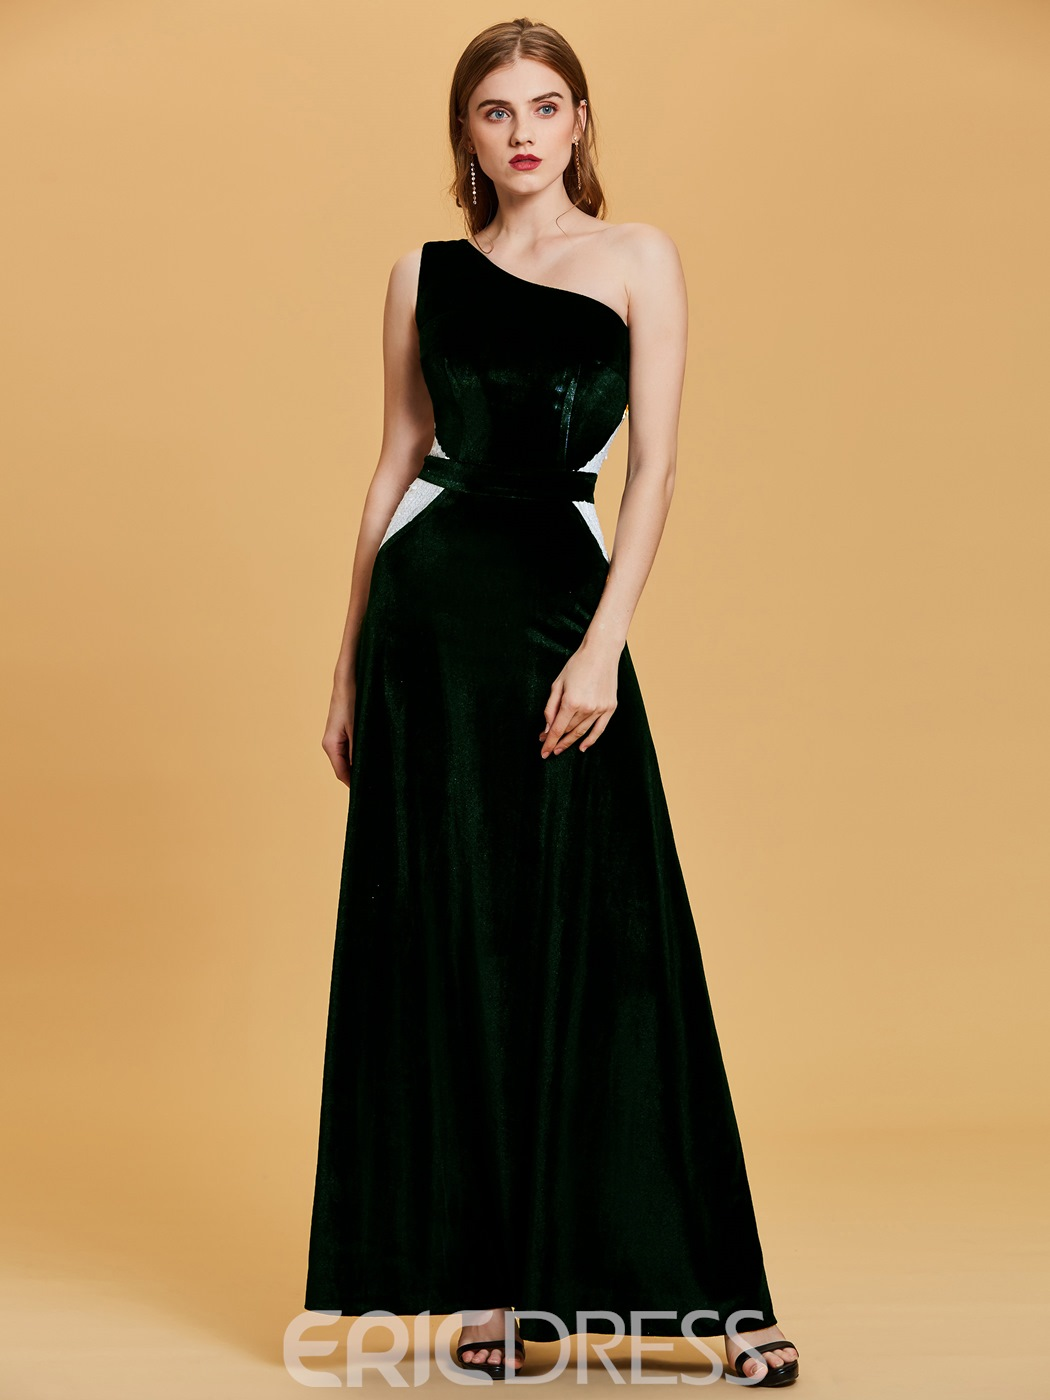 Ericdress One Shoulder Color Contrast Velvet A Line Evening Dress